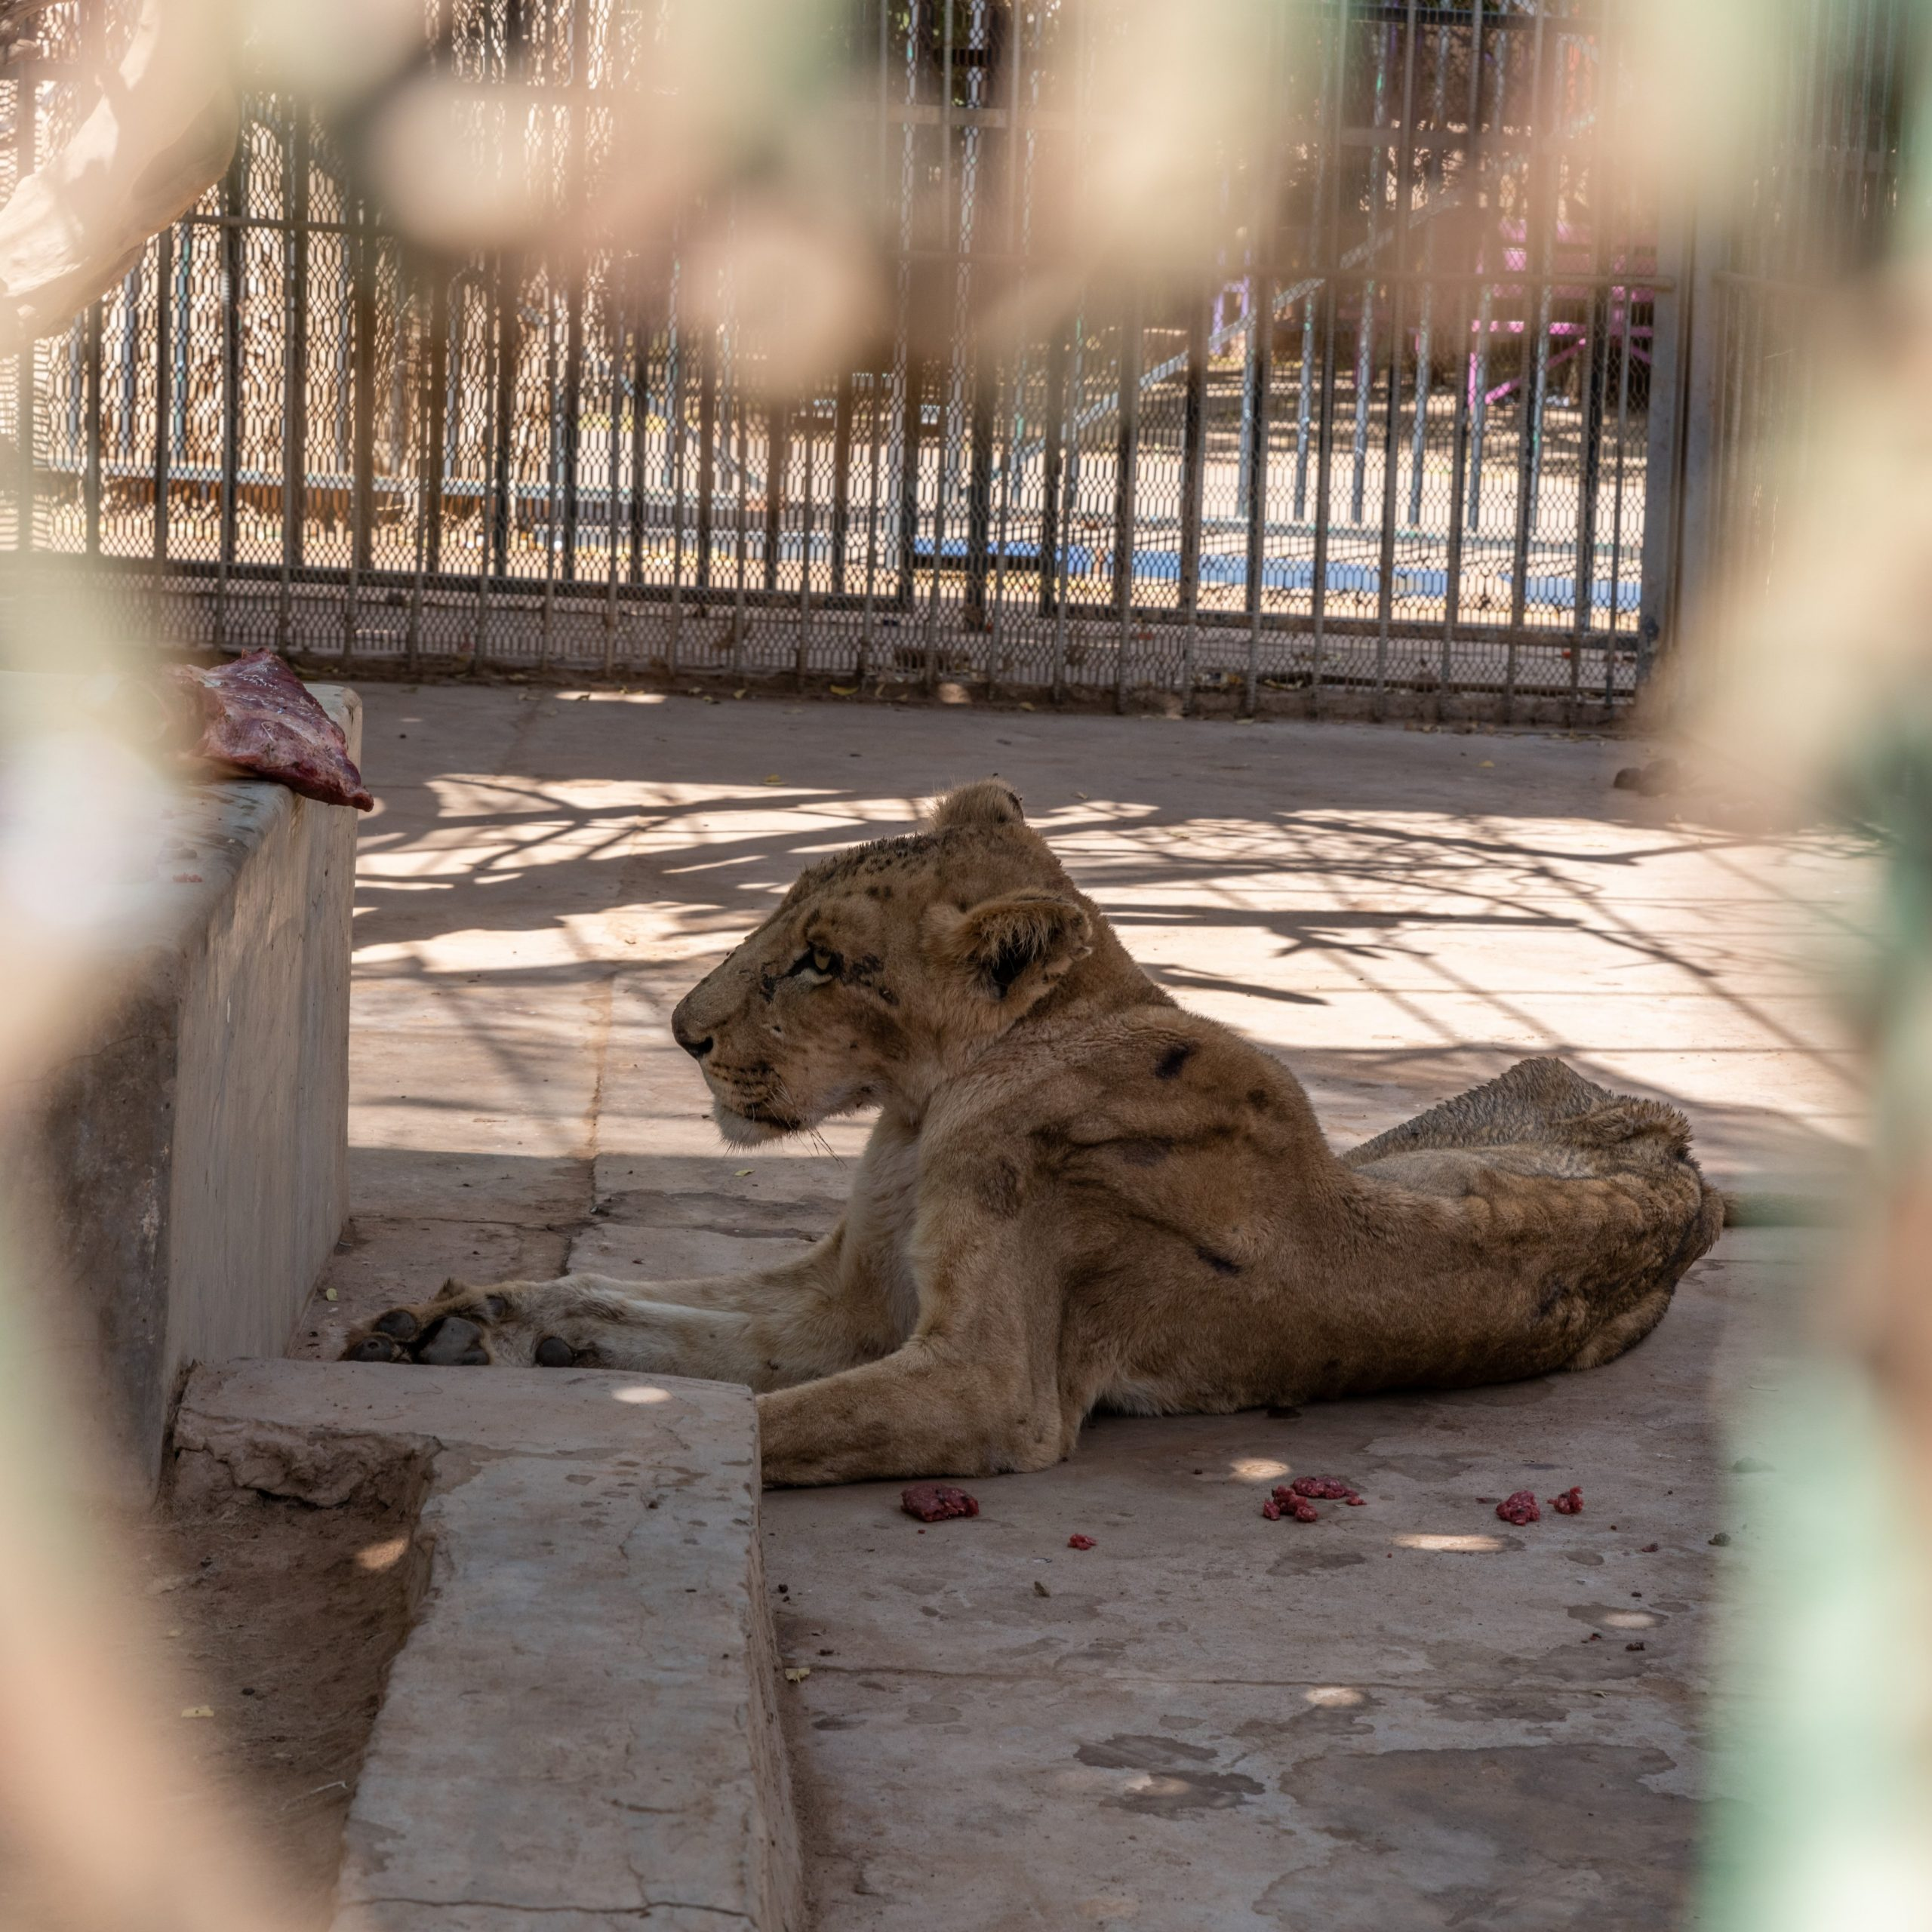 Petition: Send Zoo Animals in Deplorable Conditions to Animal Sanctuaries